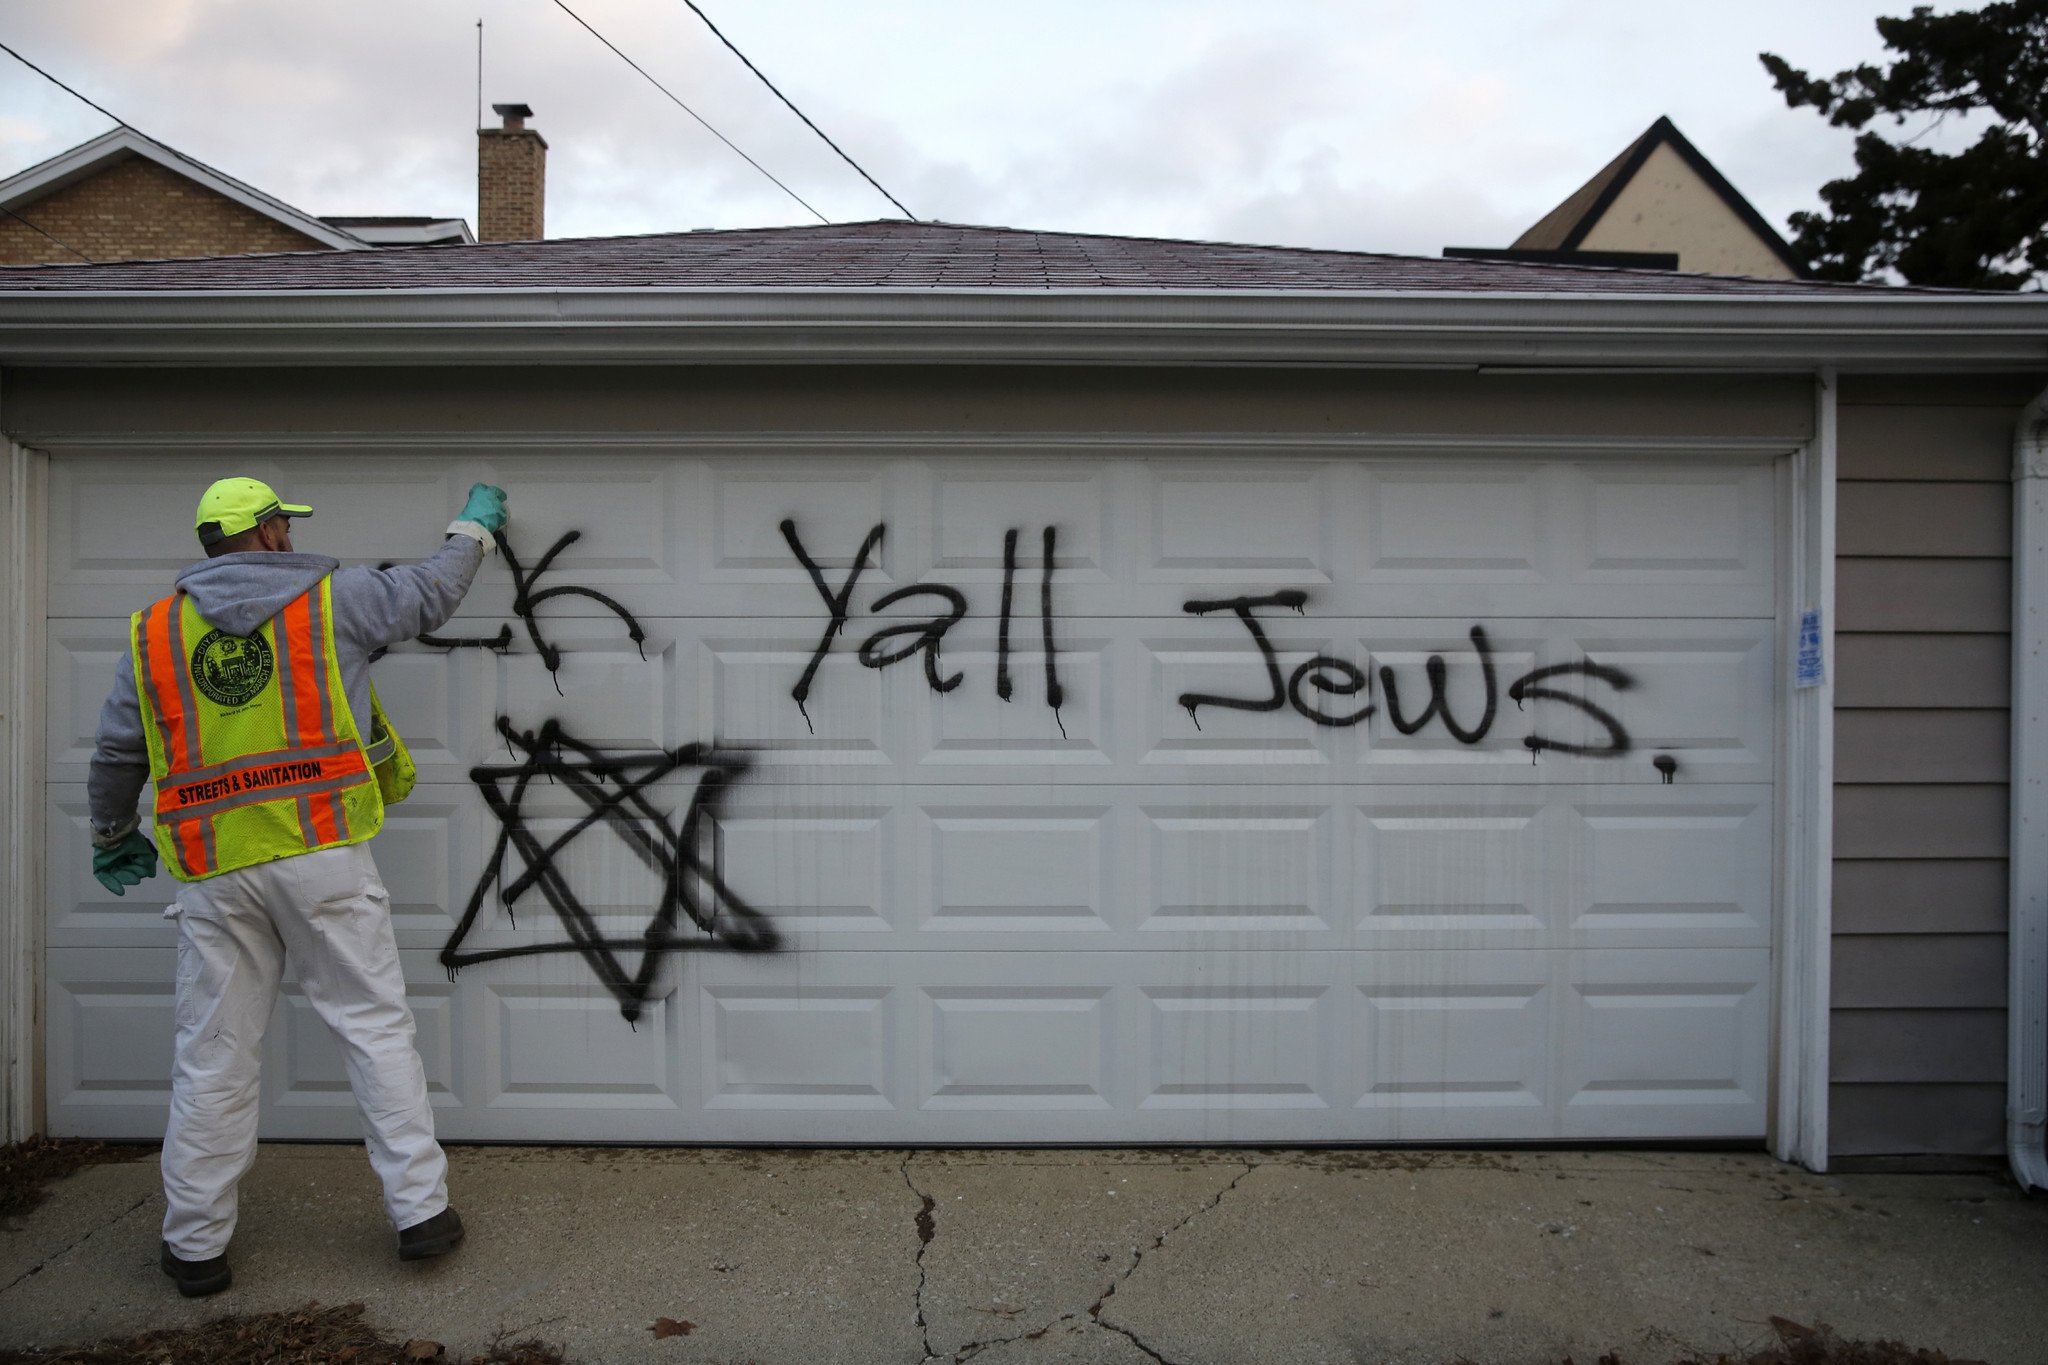 Anti-Semitic graffiti found on synagogue, homes. 'It's frightening'